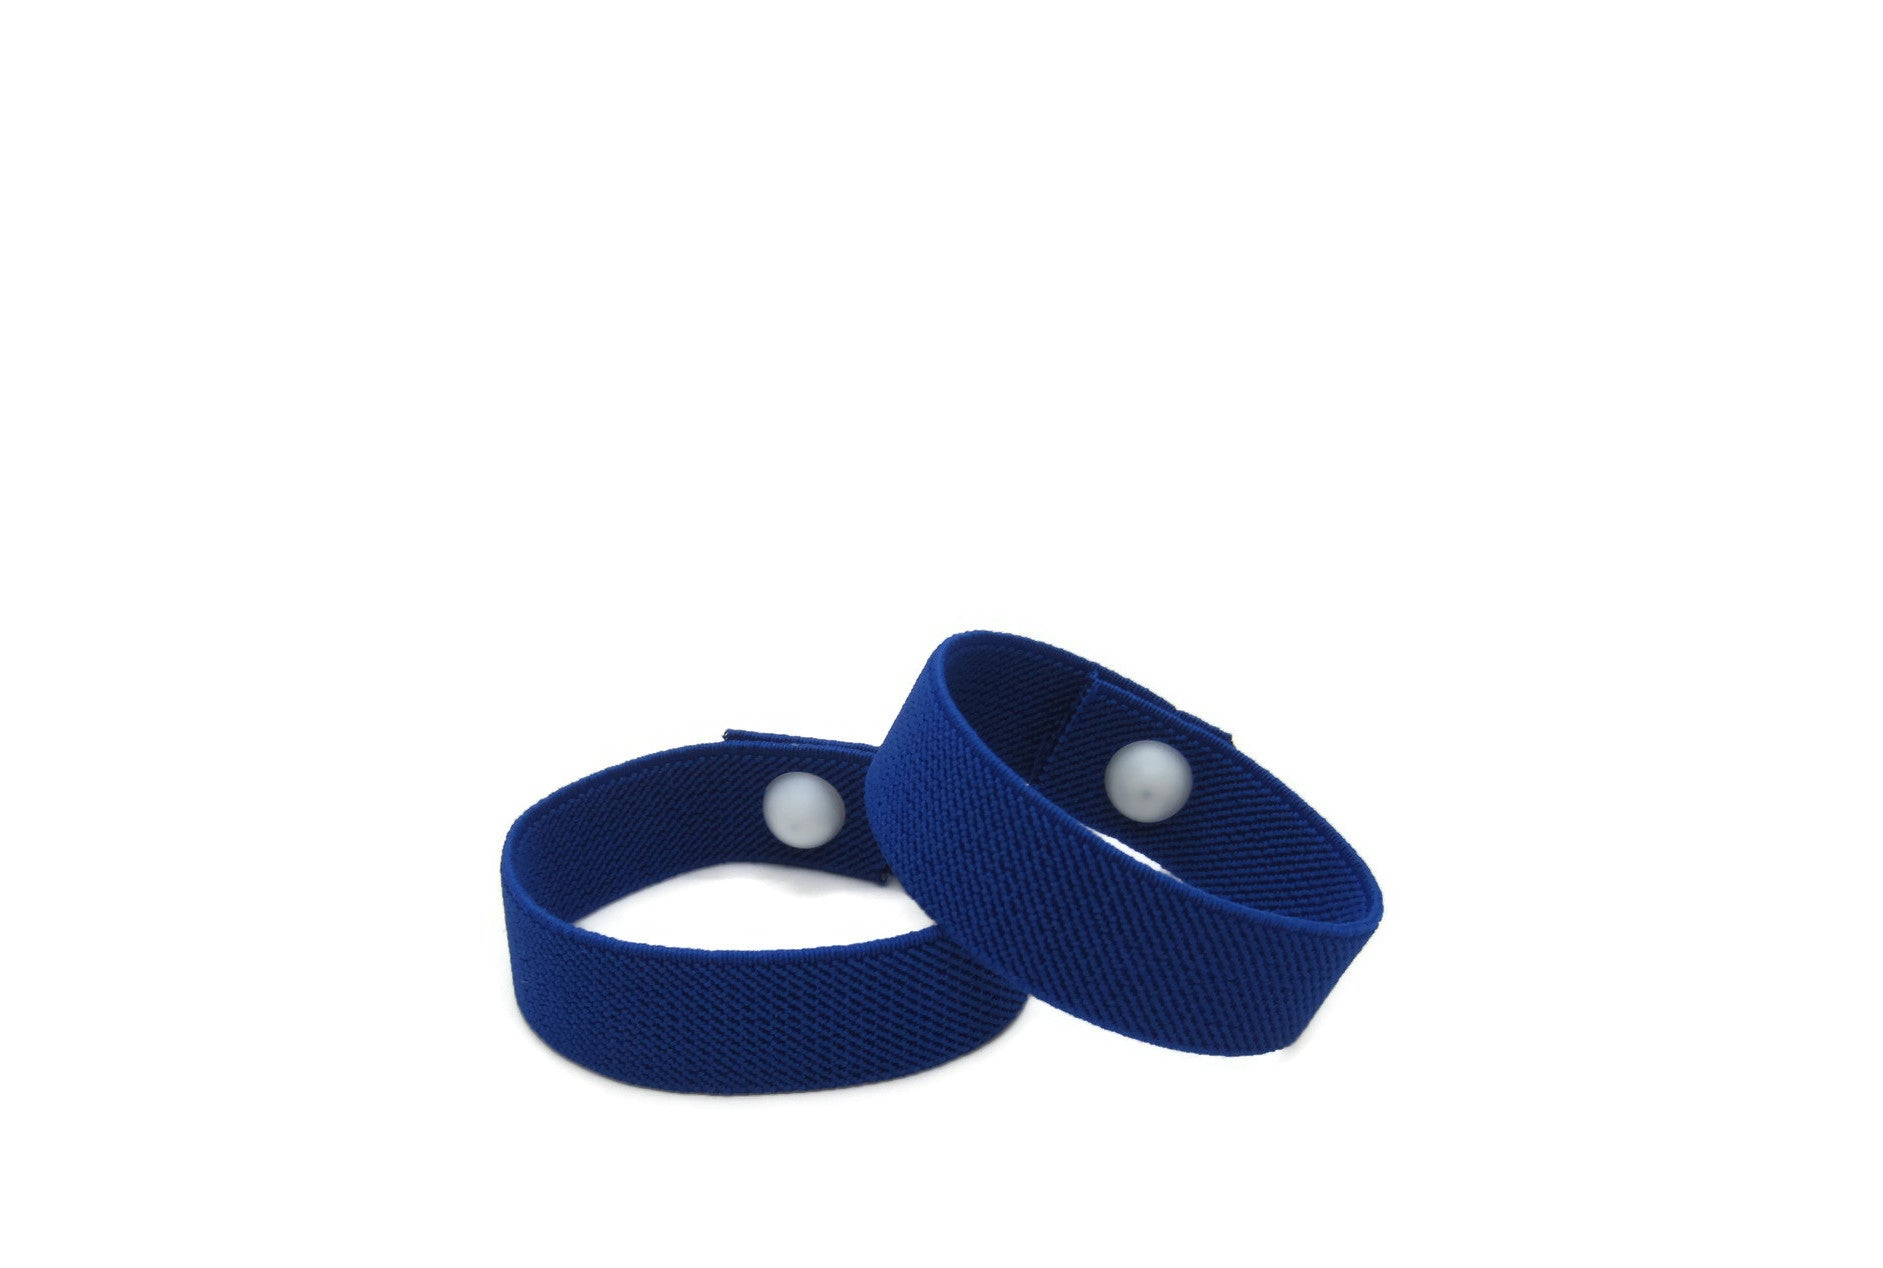 Waterproof Motion Sickness Wristbands, Pull On Elasticated, Travel Wristbands, Anti Nausea Bracelet, Morning Sickness Bracelet (pair) Royal Blue - Acupressure Bracelets